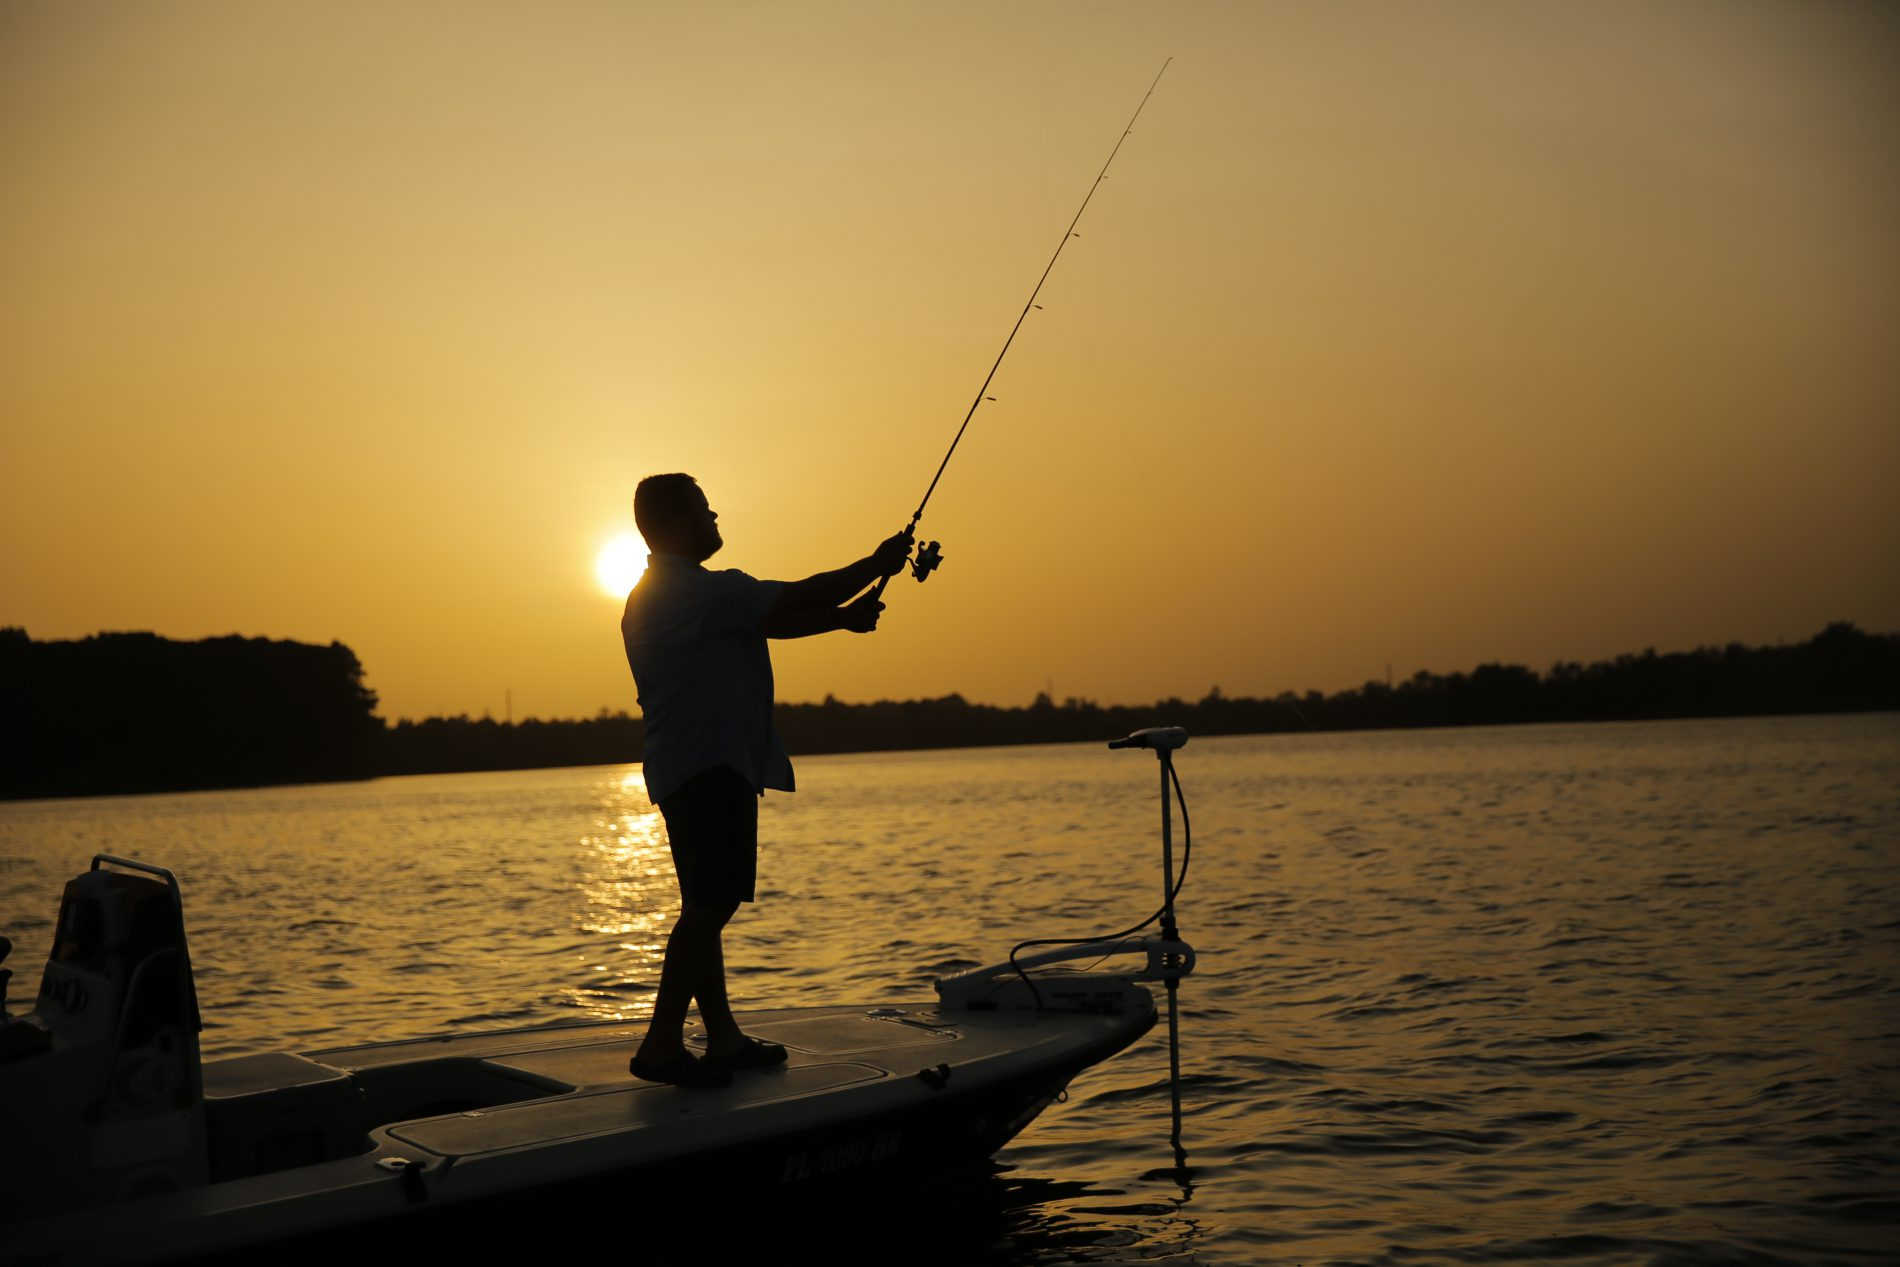 Man standing on deck of bass boat fishing in the middle of a lake as the sun is setting